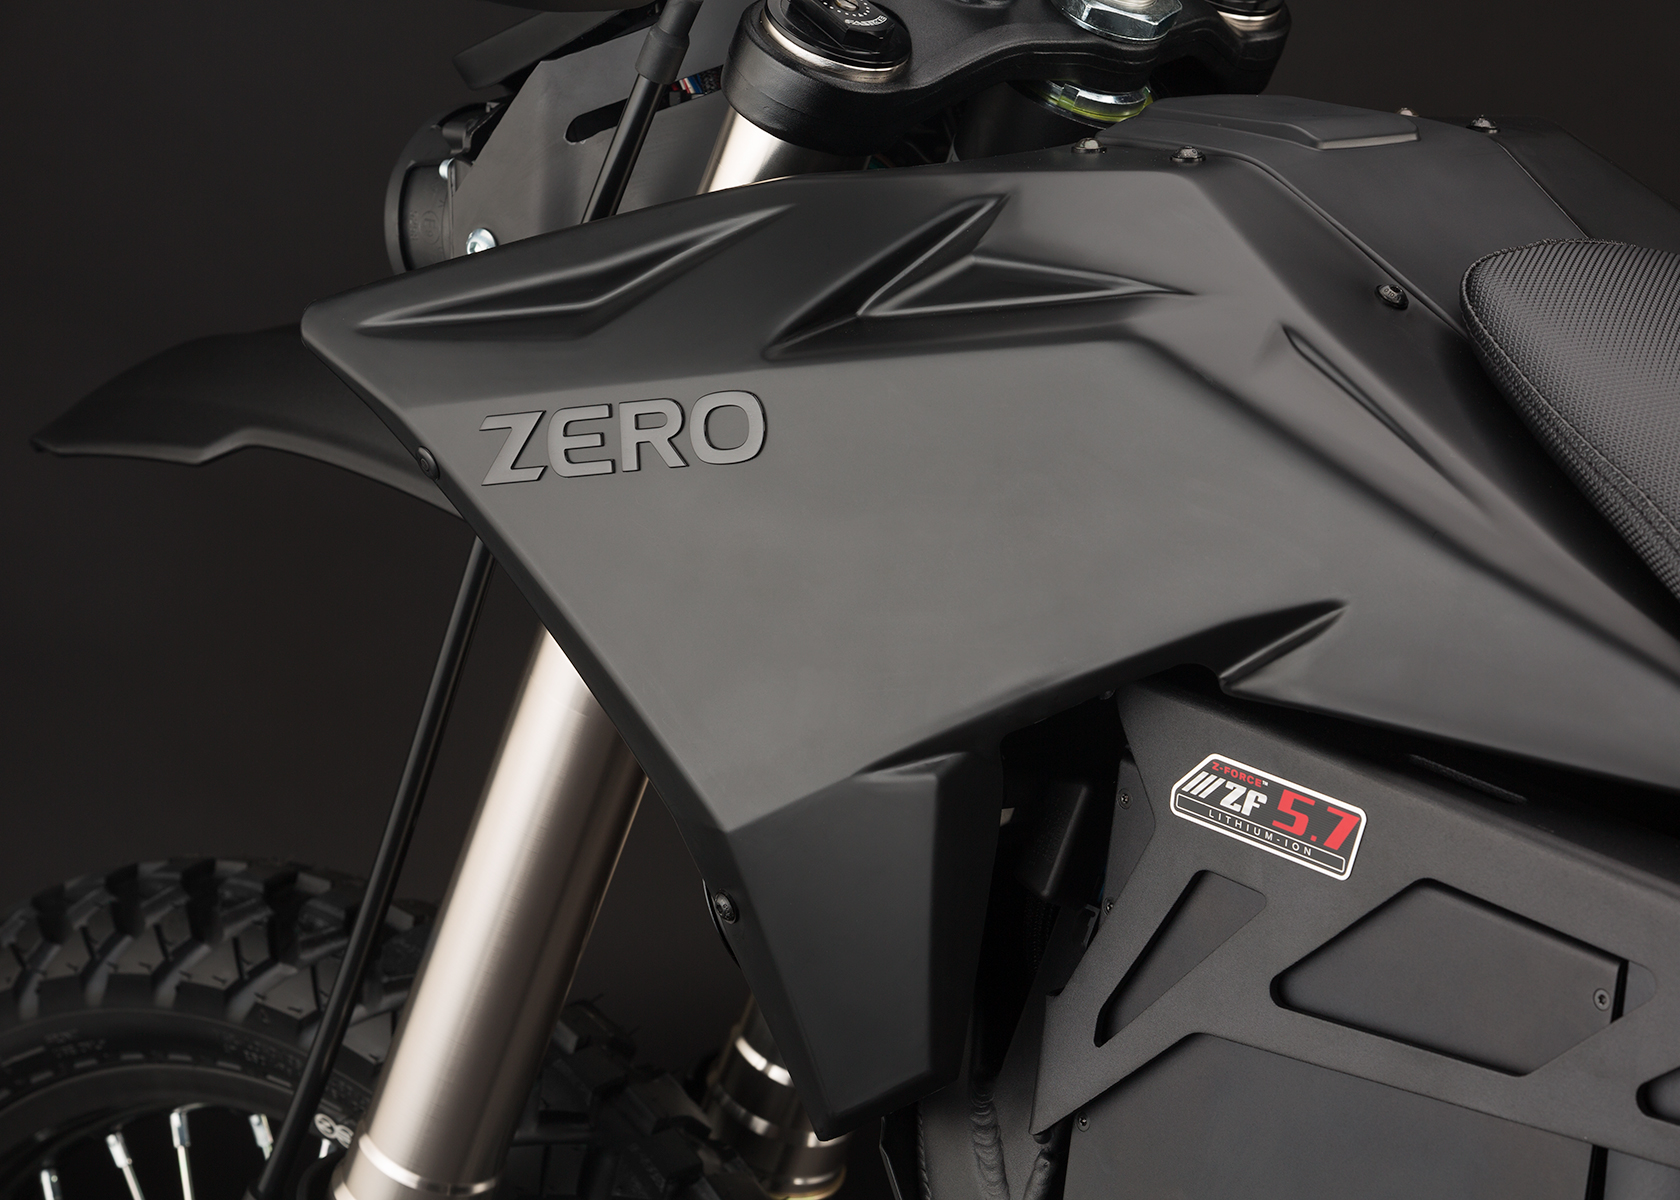 2014 Zero FX Electric Motorcycle: Tank